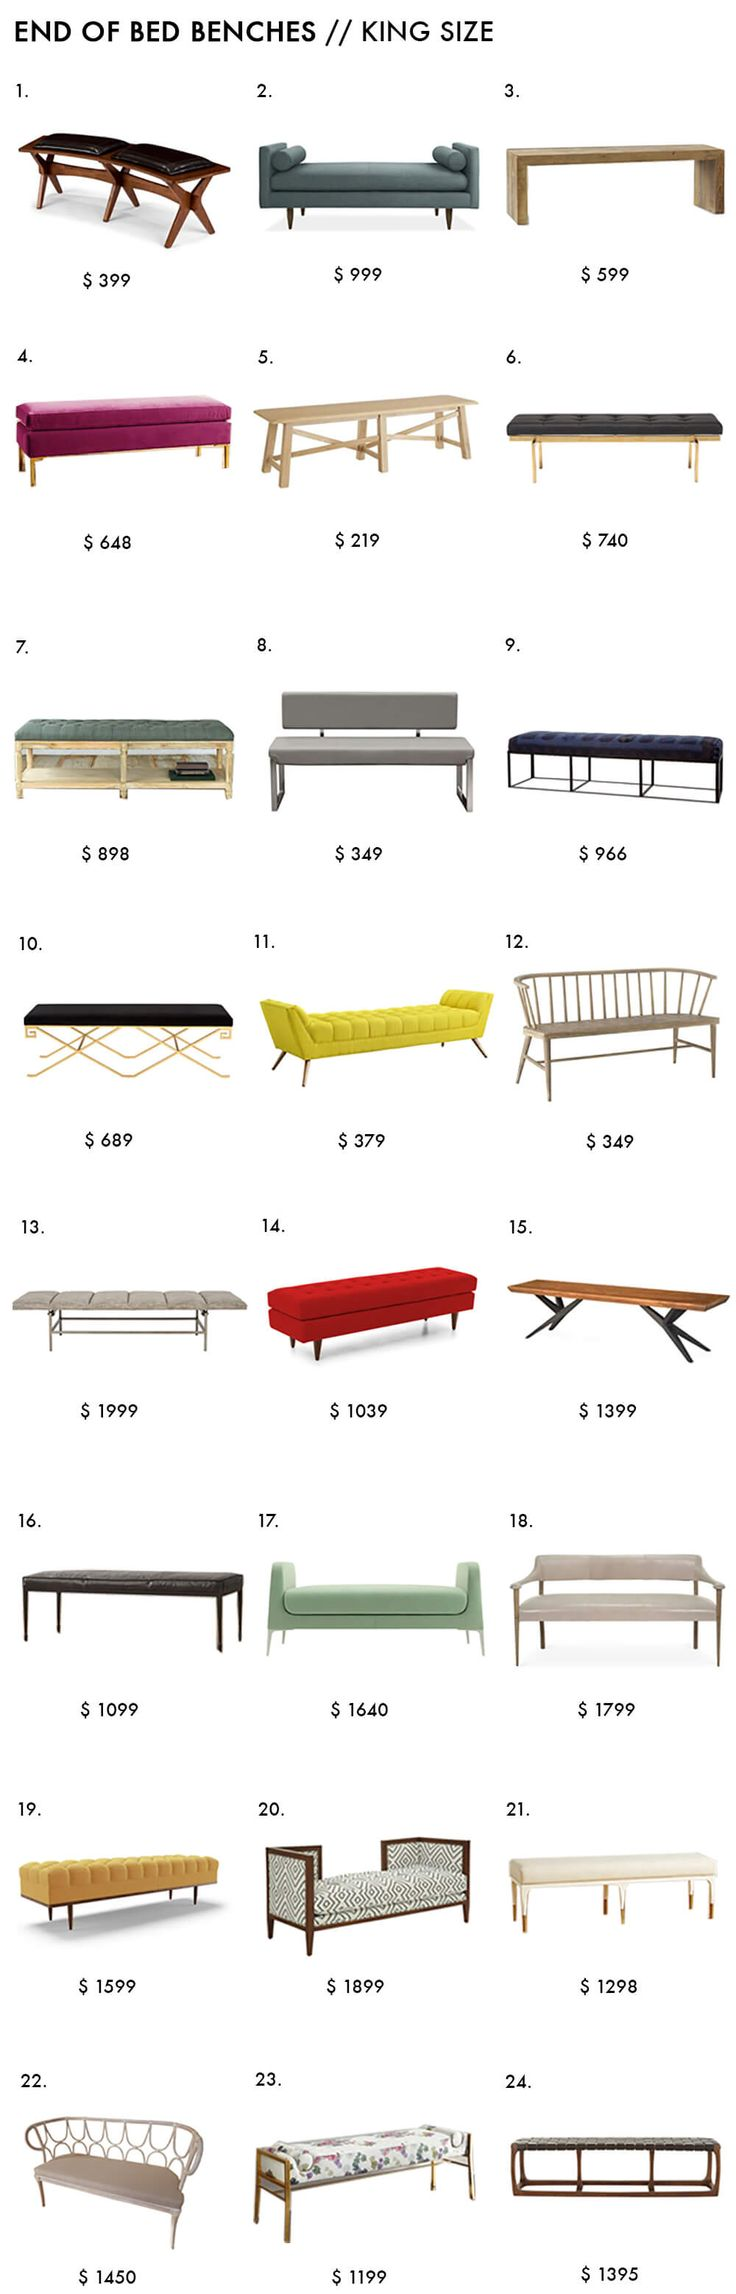 End of Bed Benches